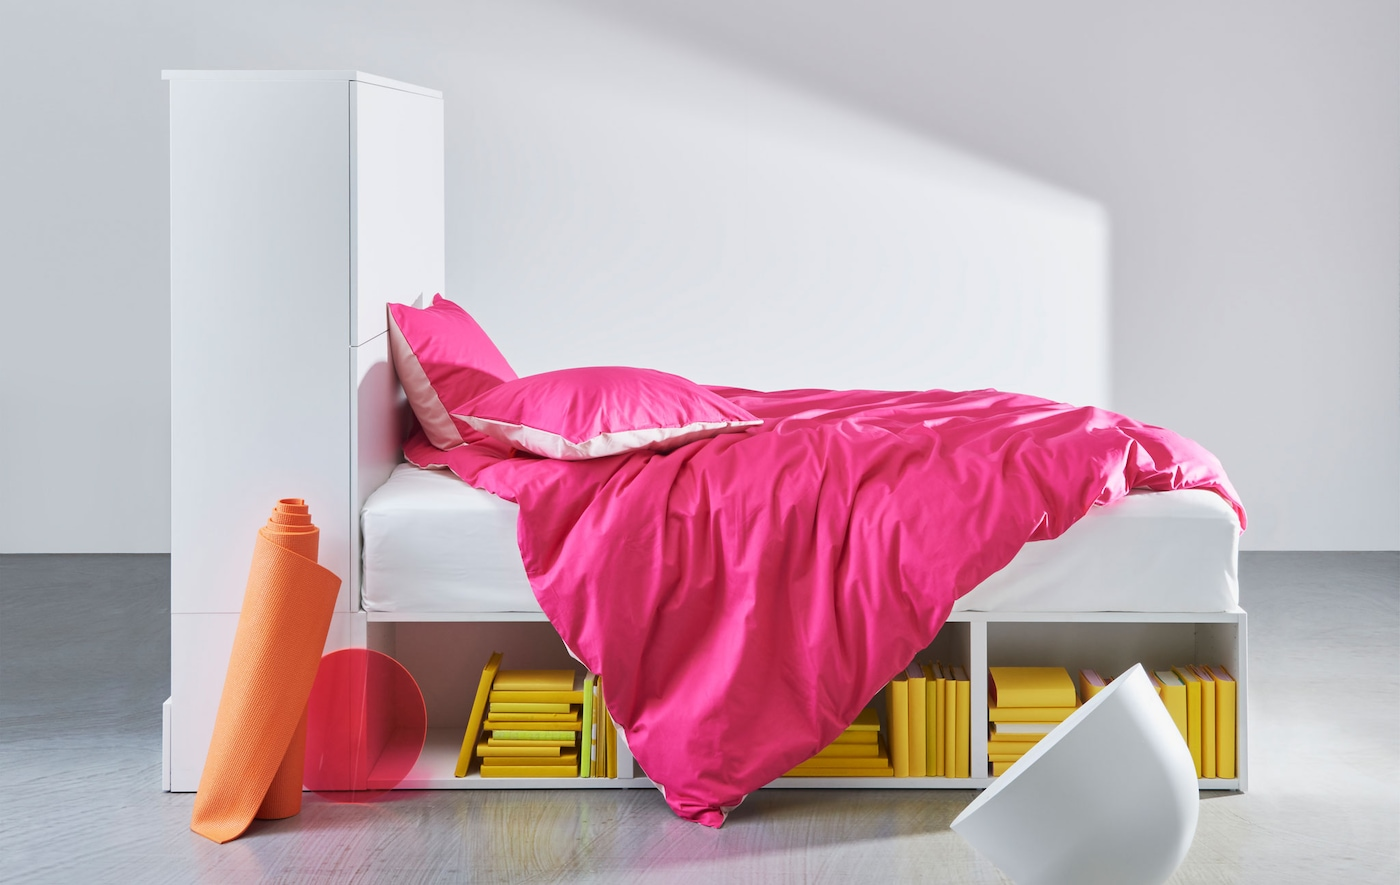 A white bed frame with built-in storage dressed with pink bedding.